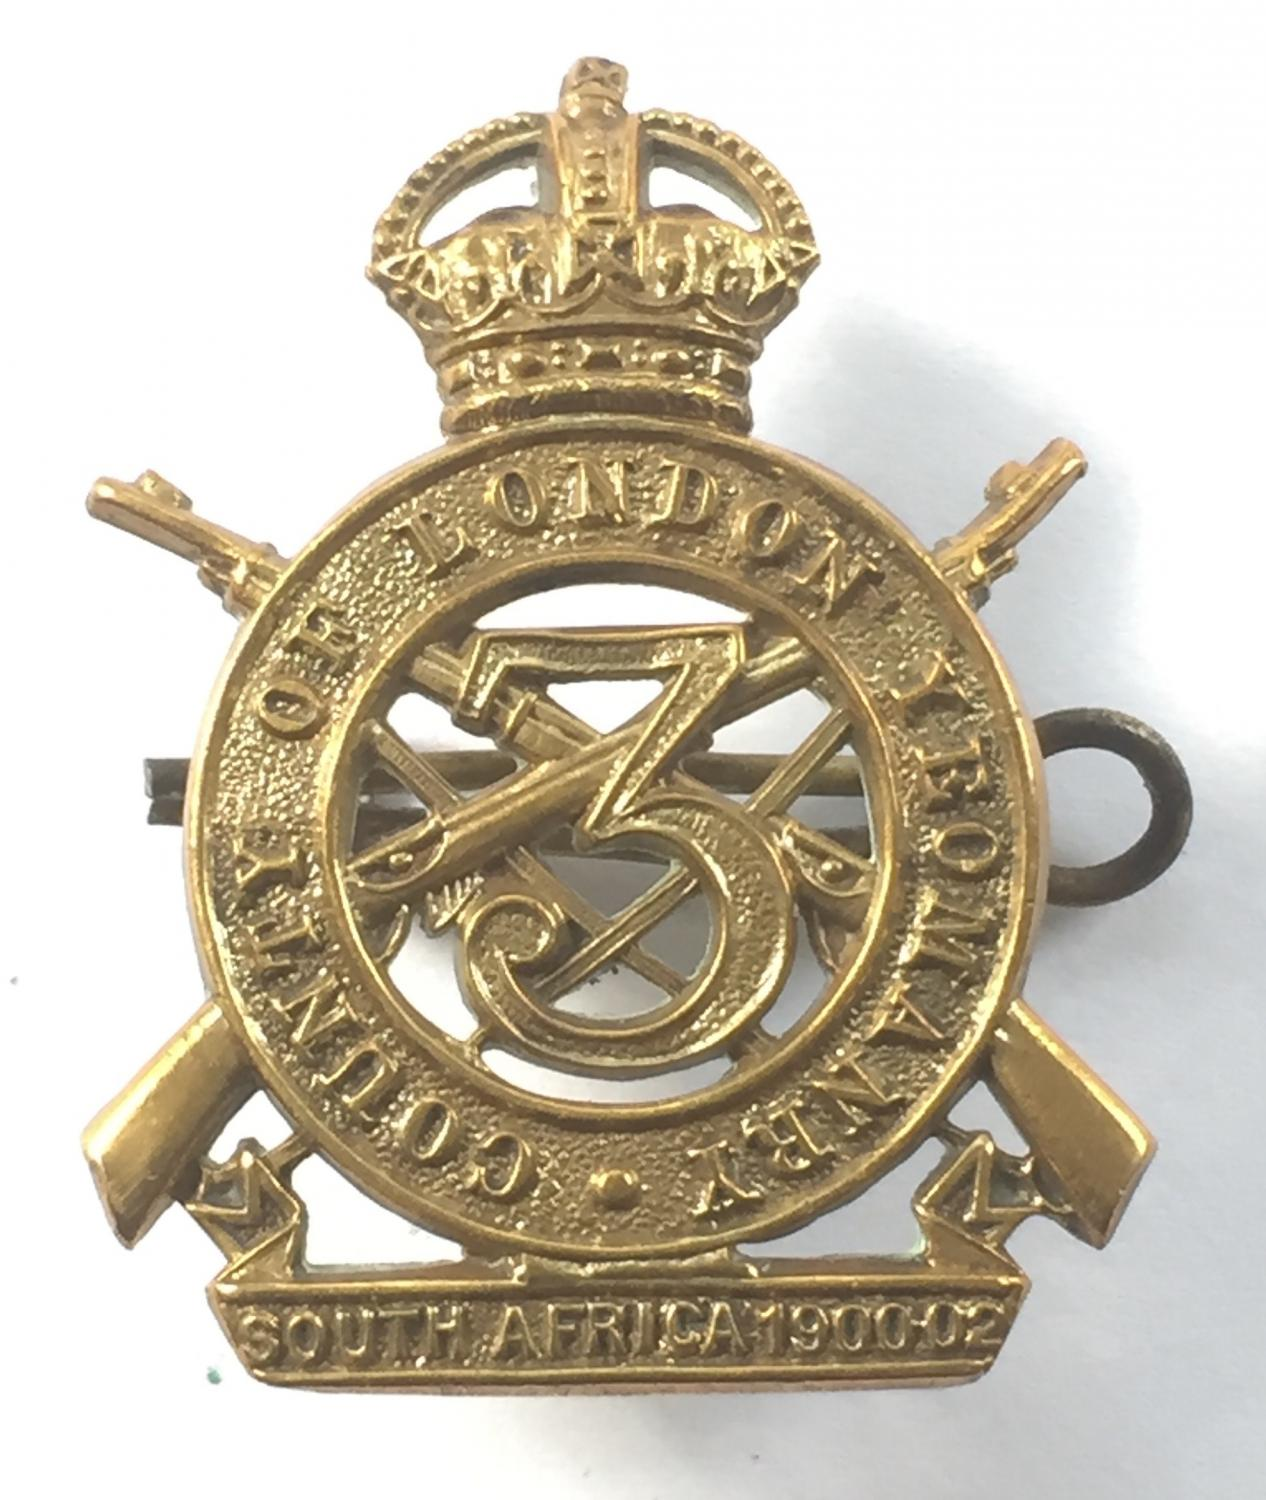 3rd CLY Sharpshooters cap badge